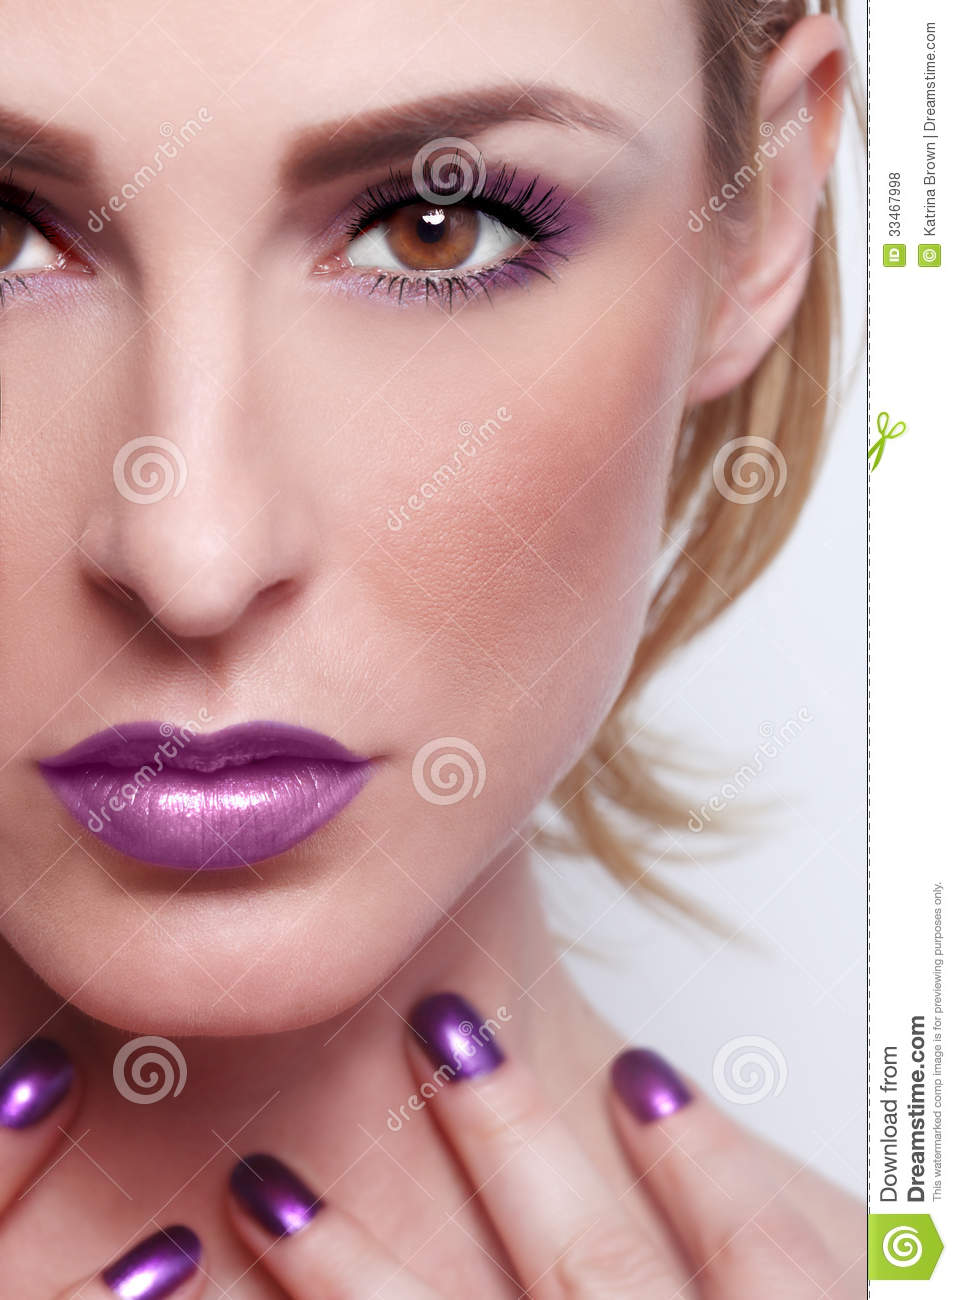 Beauty Make Up: Fashion Beauty Make Up With Matching Lips And Nails Stock